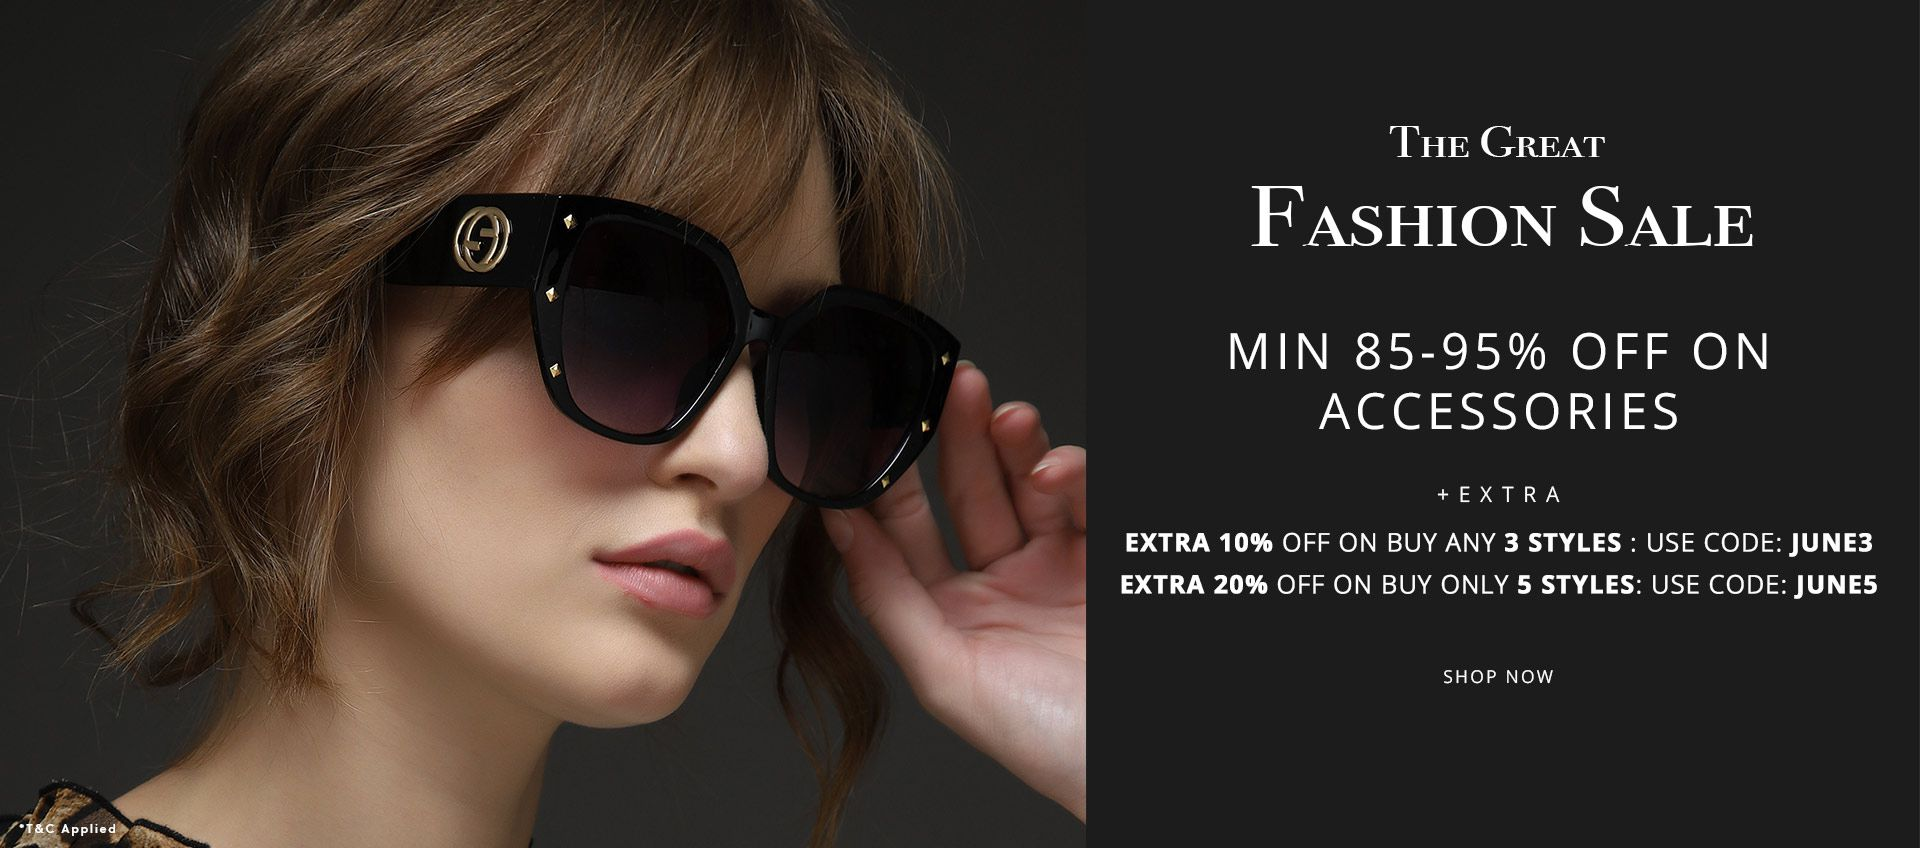 the great fashion sale min 85-95% off